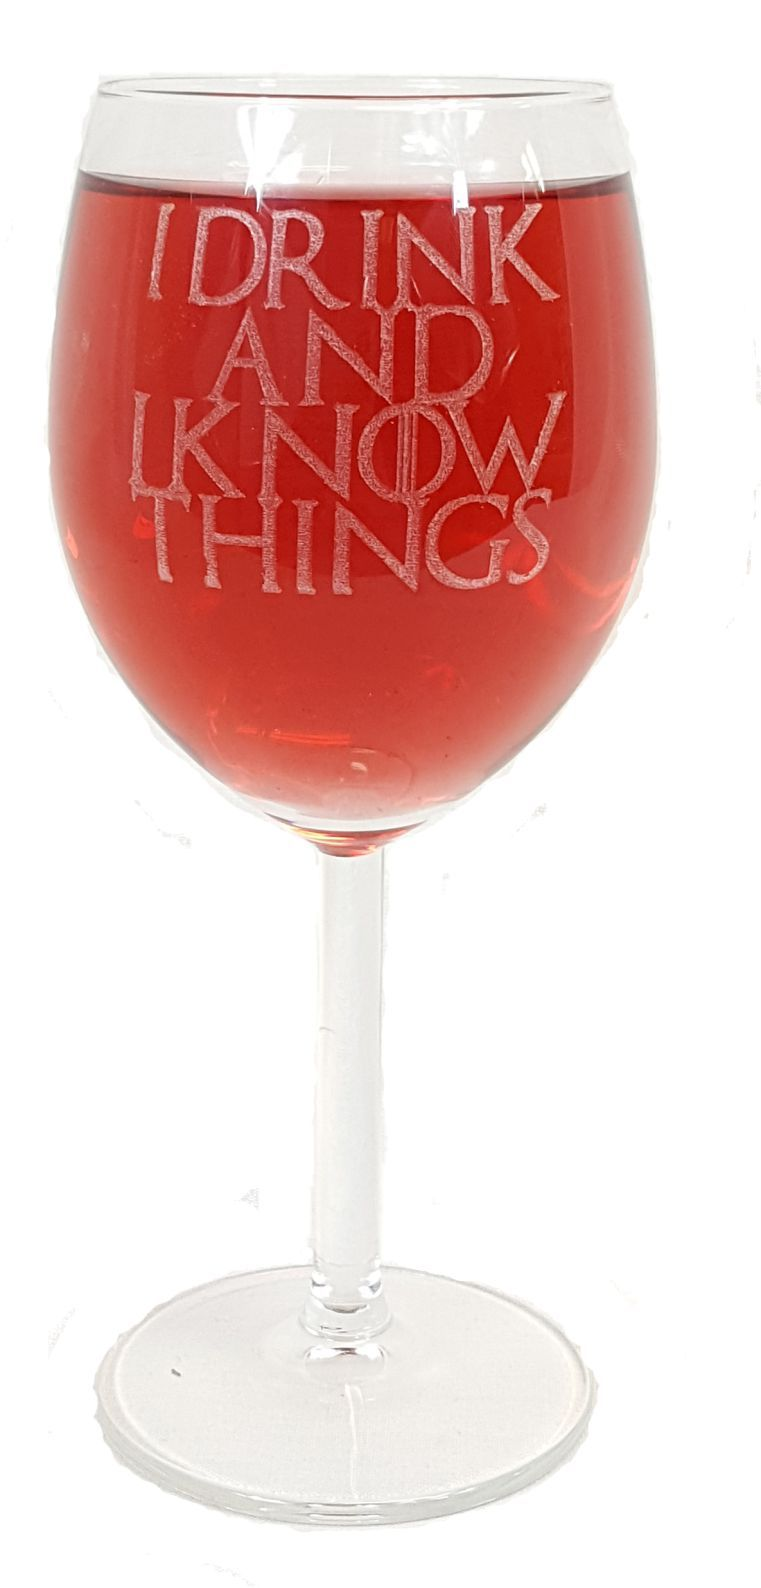 I Drink And I Know Things Game Of Thrones Inspired Wine Glass